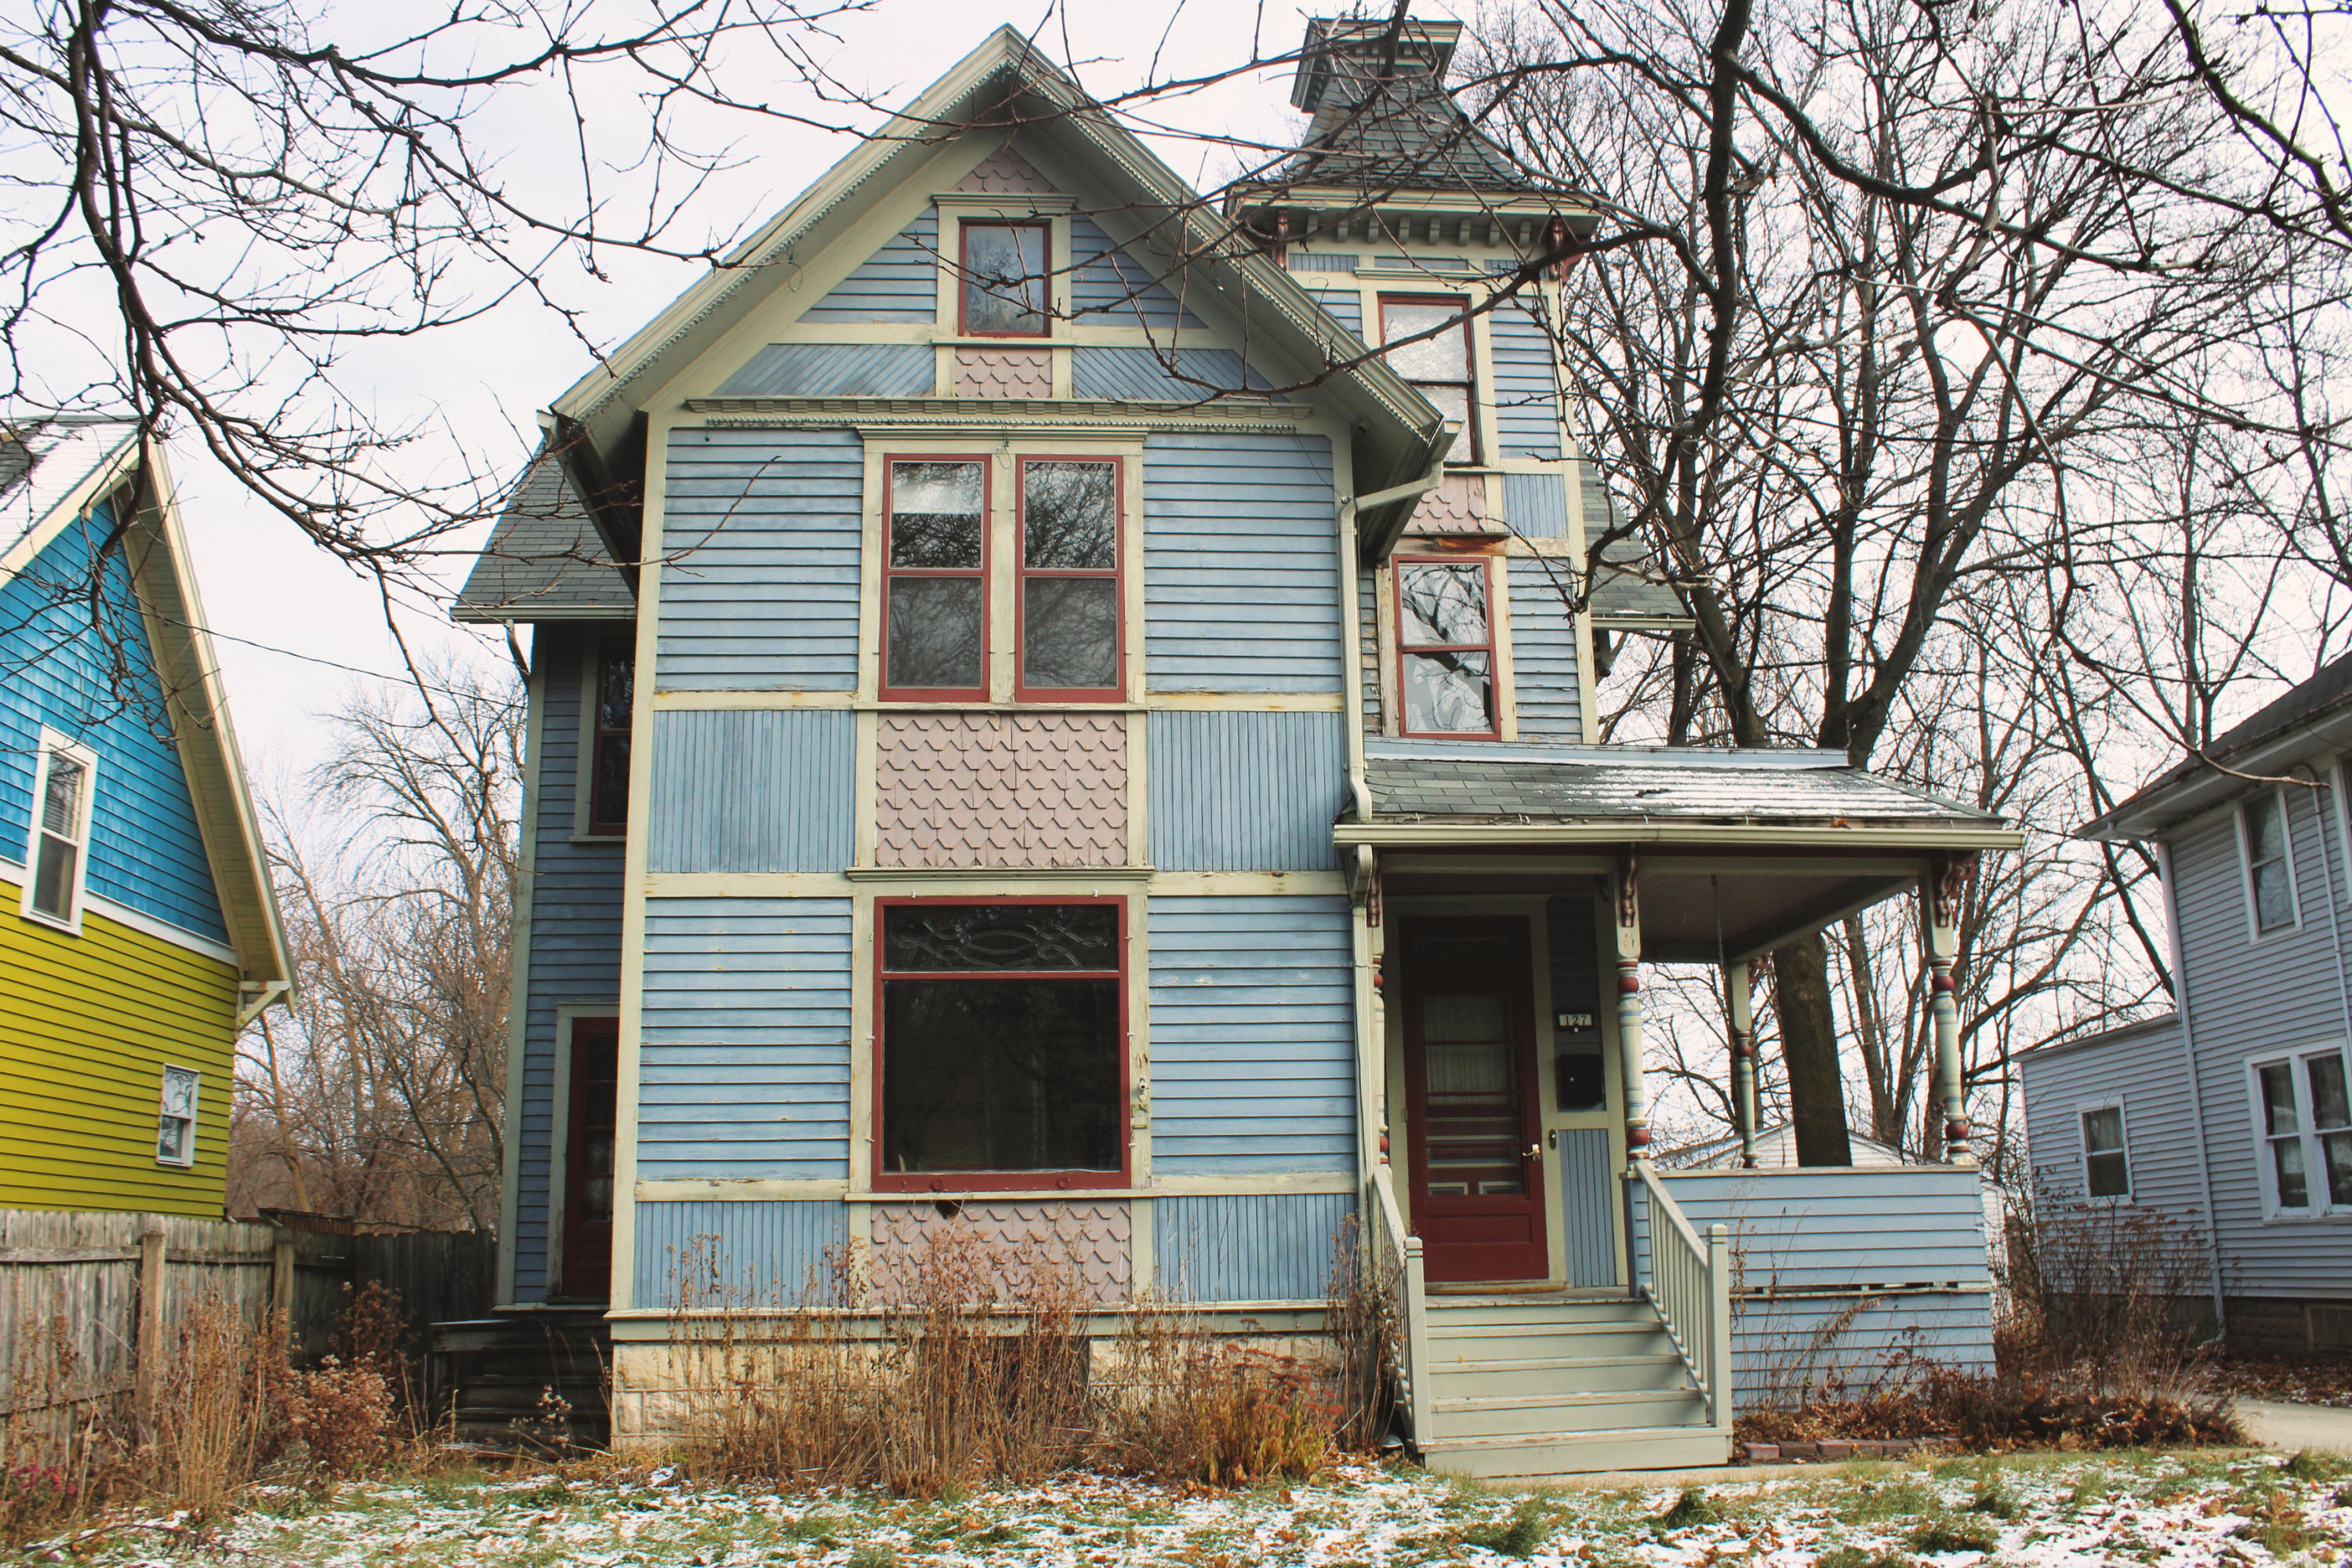 127 Randall St, Waukesha, Wisconsin 53188, 5 Bedrooms Bedrooms, 10 Rooms Rooms,1 BathroomBathrooms,Single-Family,For Sale,Randall St,1615312